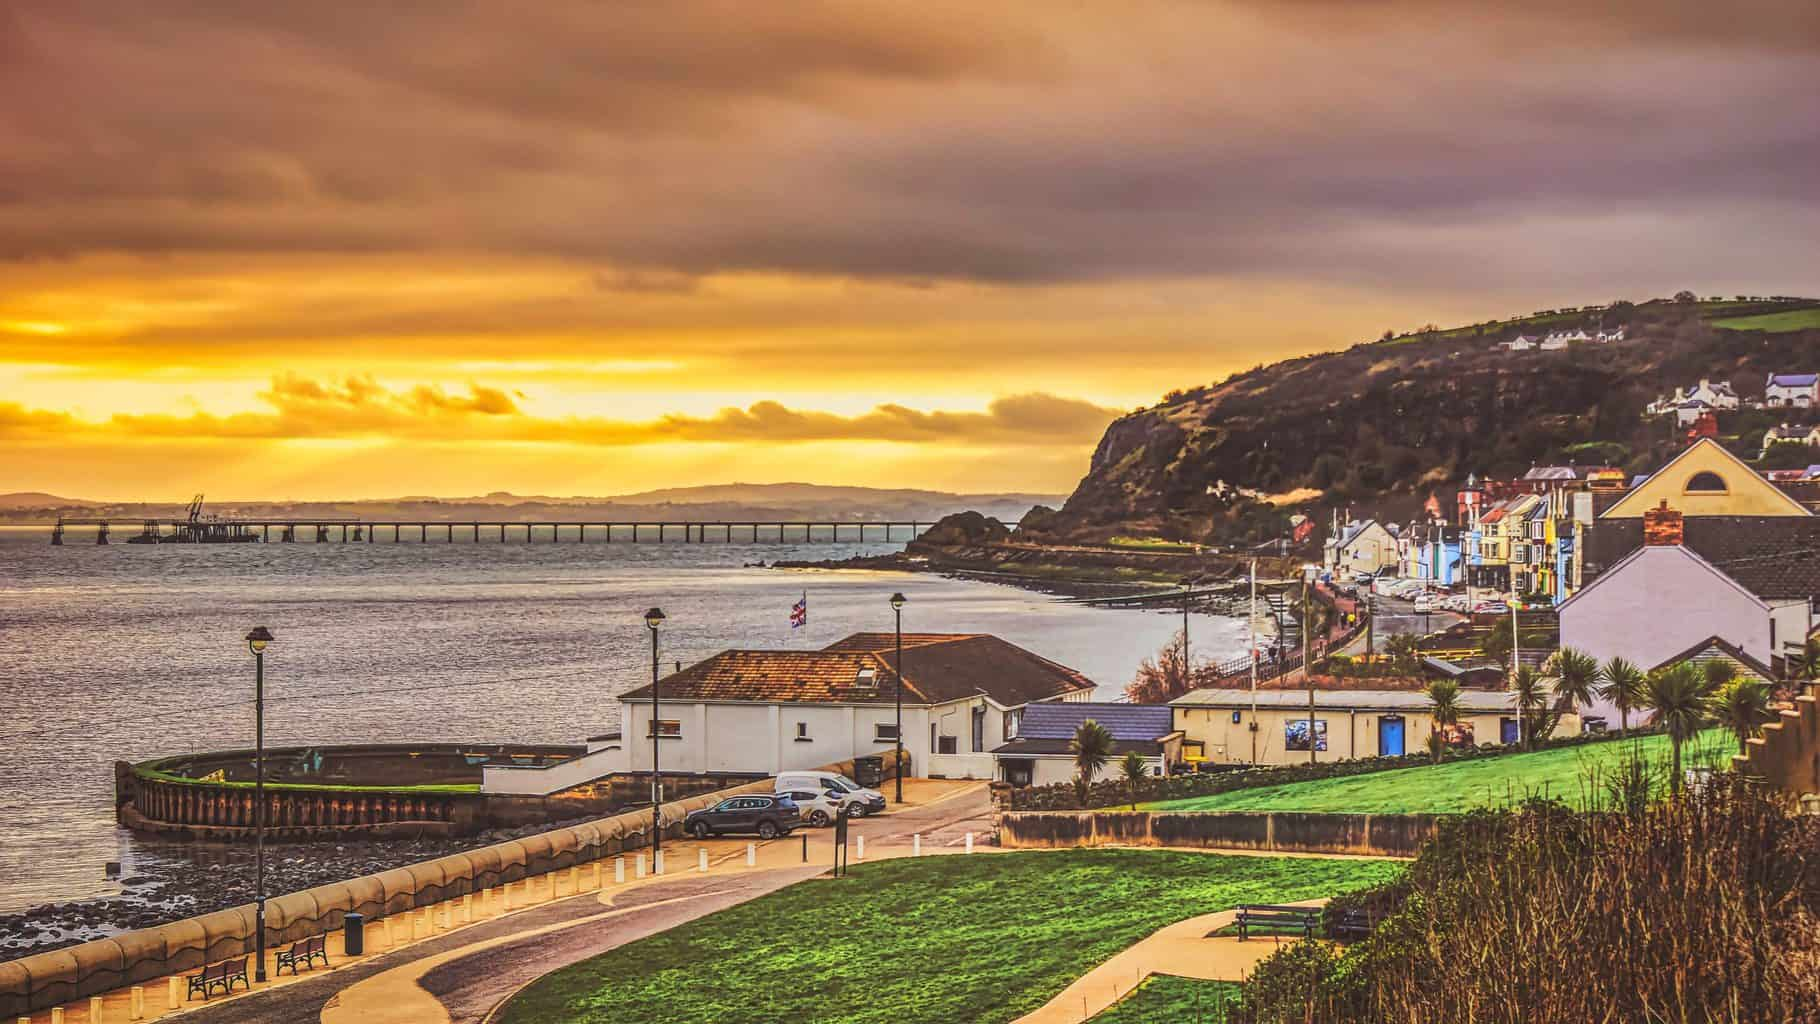 A low-hanging sun combined with an incoming winter storm created this beautiful sunset over Whitehead on the coast of Belfast Lough. The coast of County Down, on the far side of the lough, can be seen on the horizon (Jan., 2020).